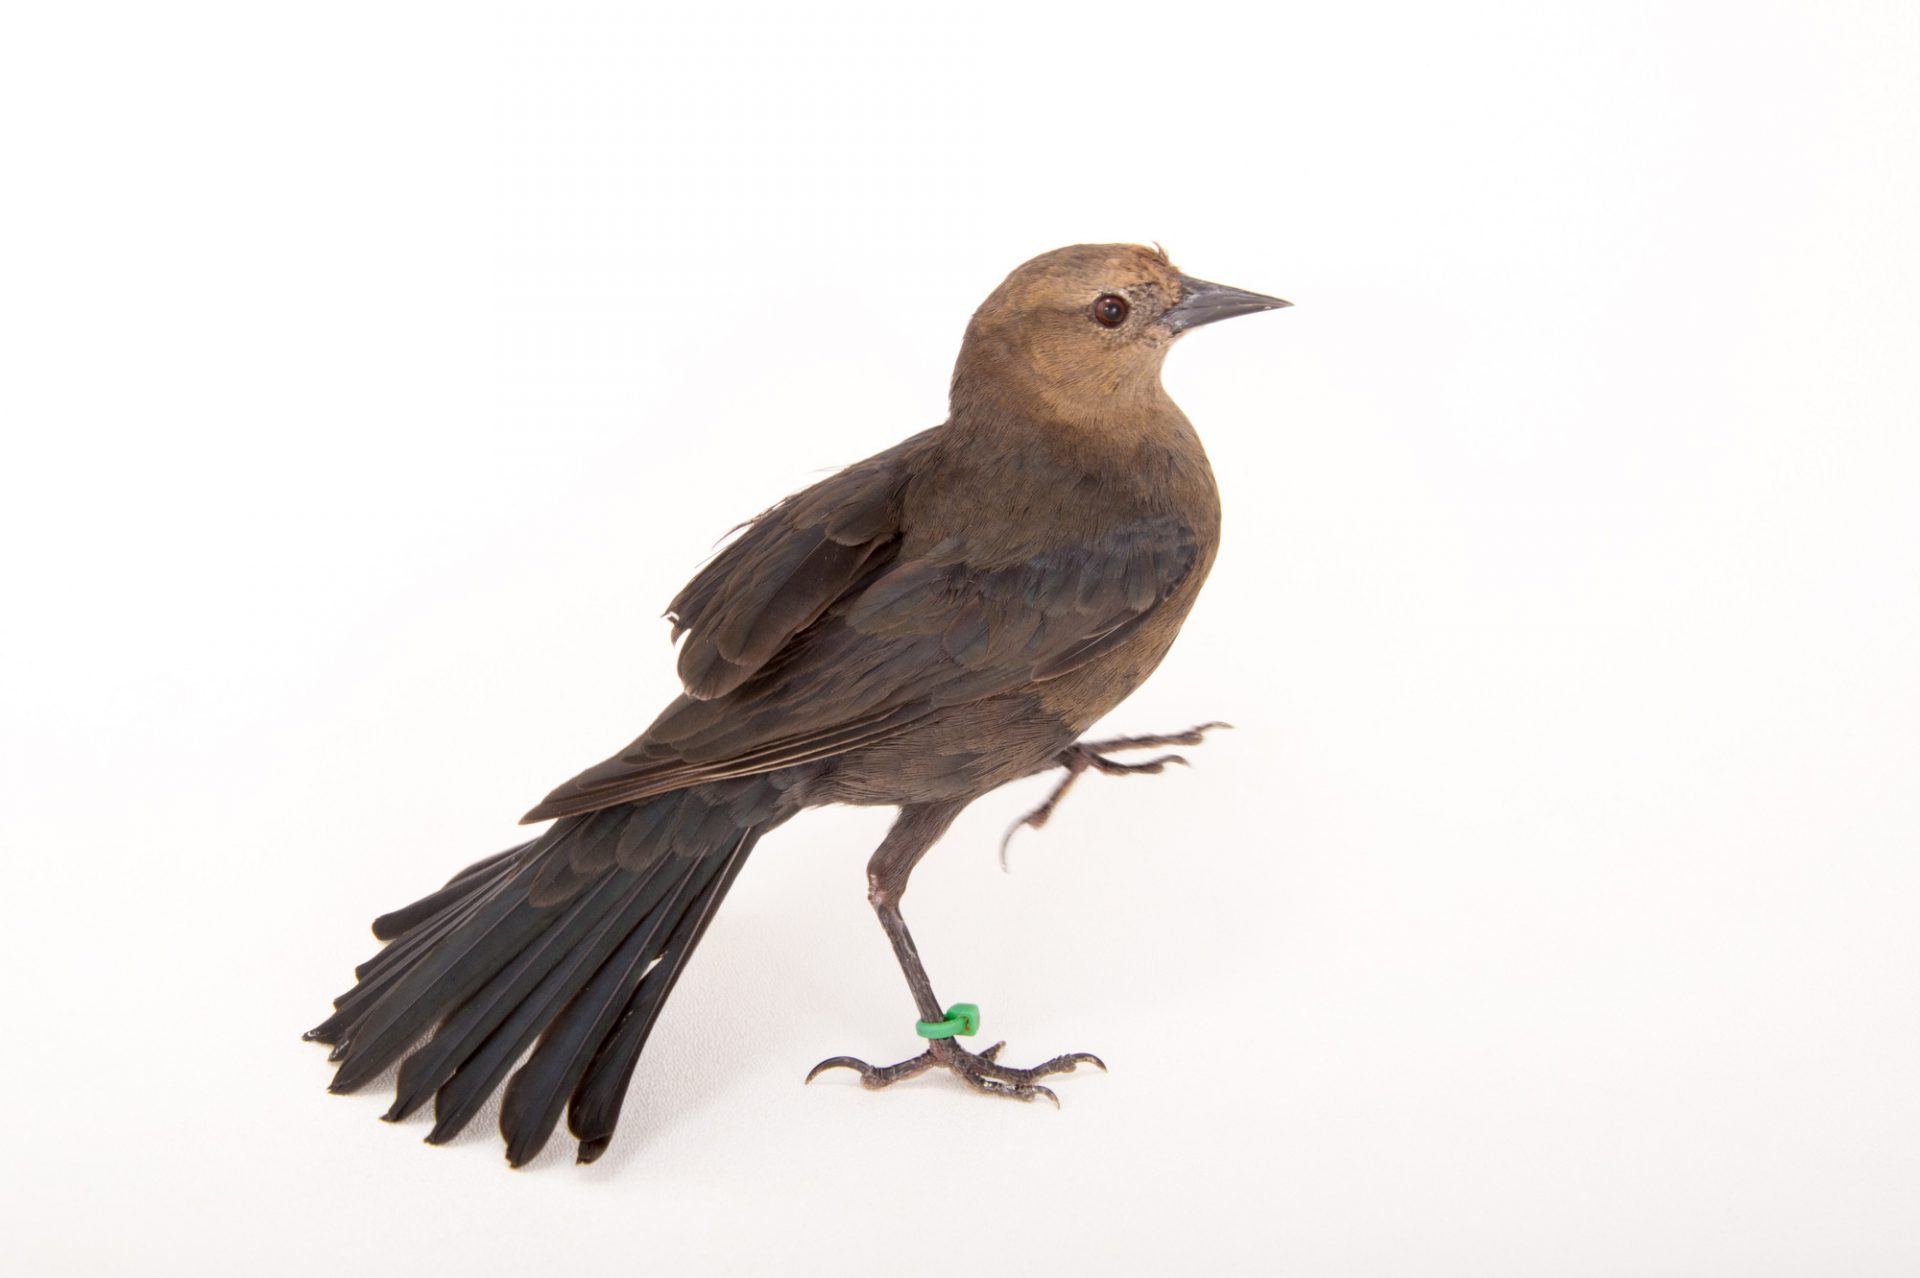 Picture of a Brewer's blackbird (Euphagus cyanocephalus) at Tracy Aviary.